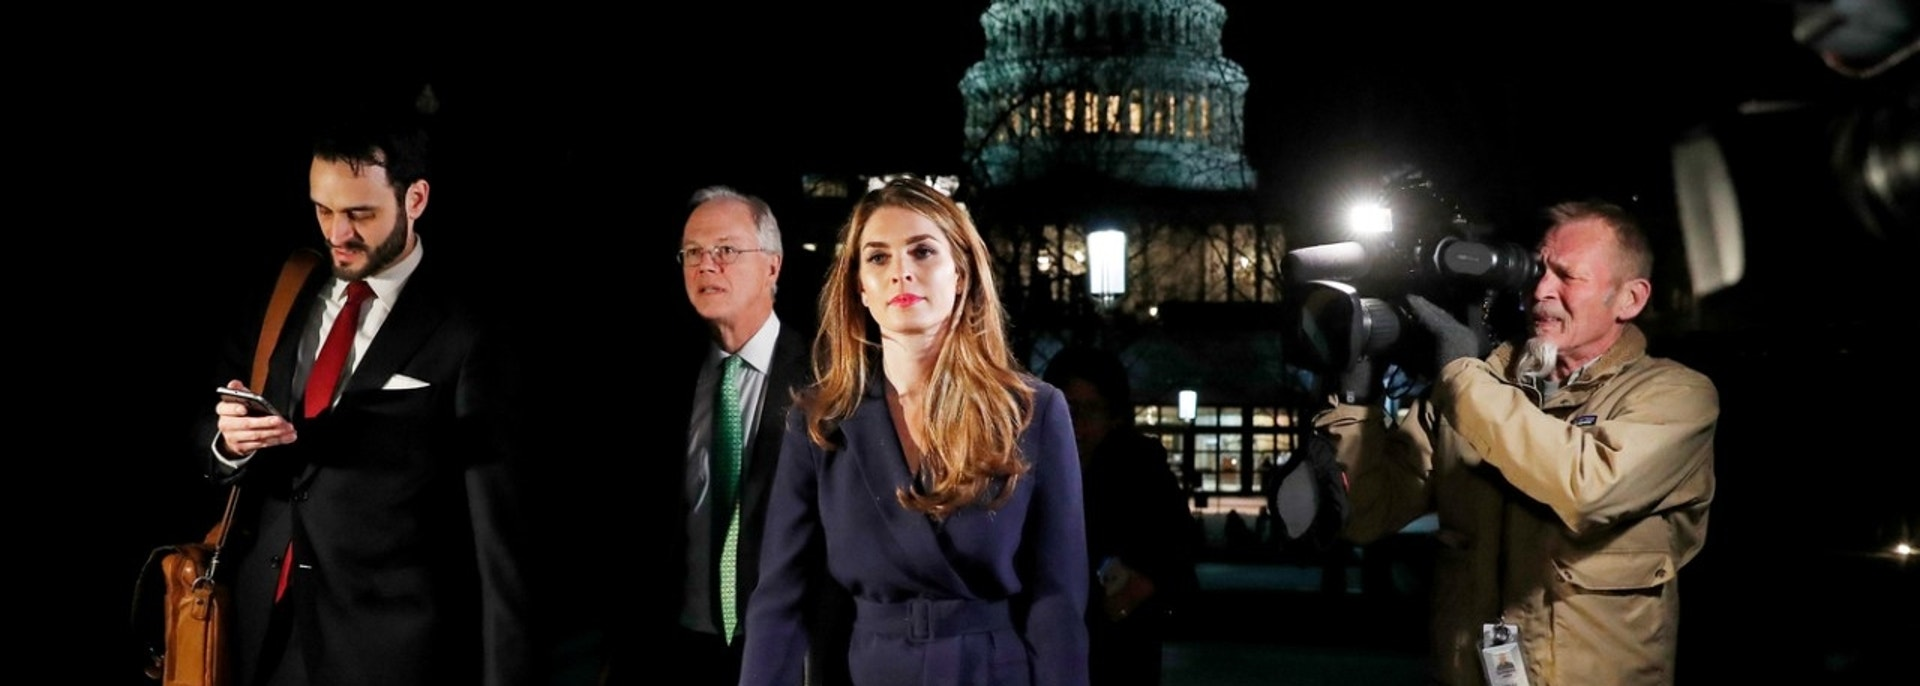 FILE PHOTO: White House Communications Director Hope Hicks leaves the U.S. Capitol after attending the House Intelligence Committee closed door meeting in Washington, U.S., February 27, 2018. REUTERS/Leah Millis/File Photo - RC1357FD5F80